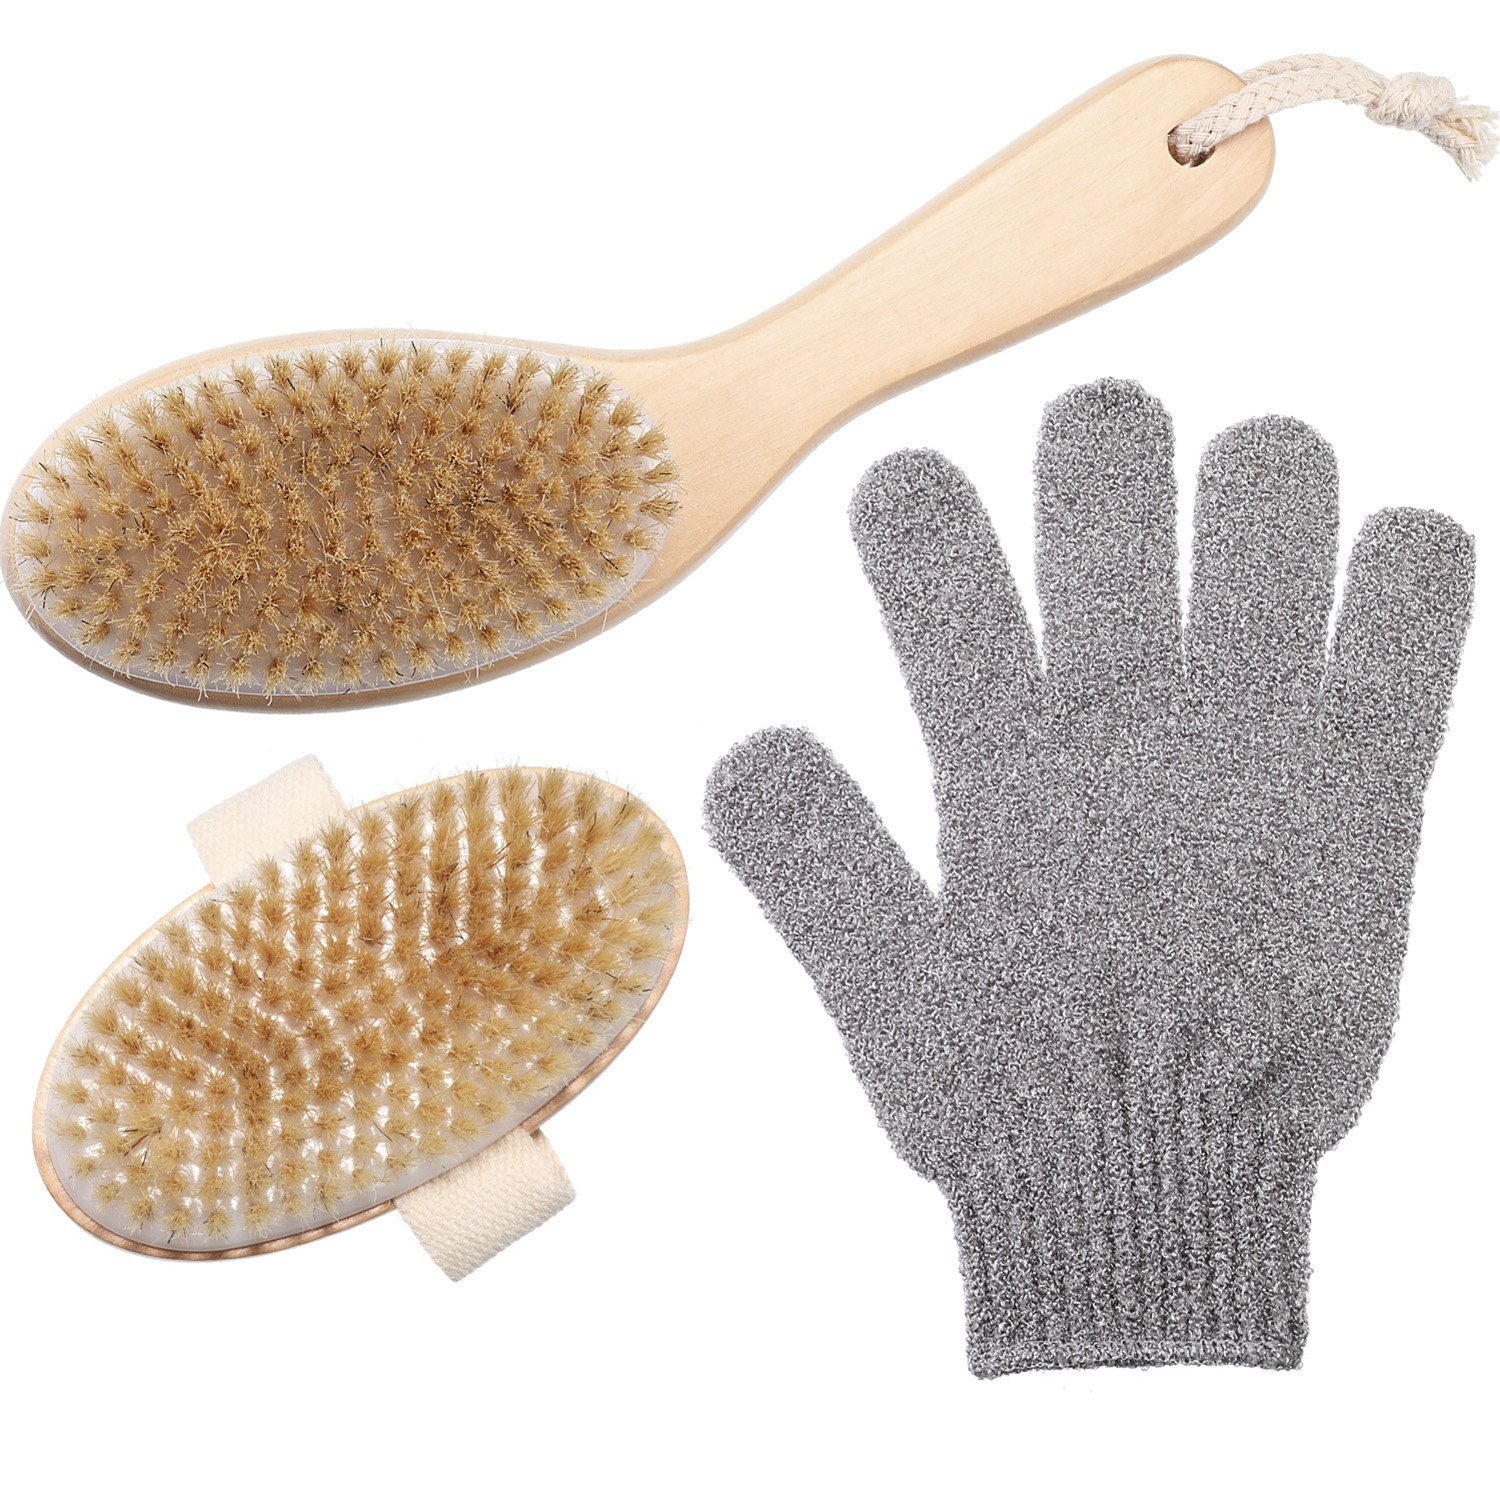 2 Styles Body Exfoliation Brush Boar Bristle Brush and Bath Gloves for Shower TecUnite